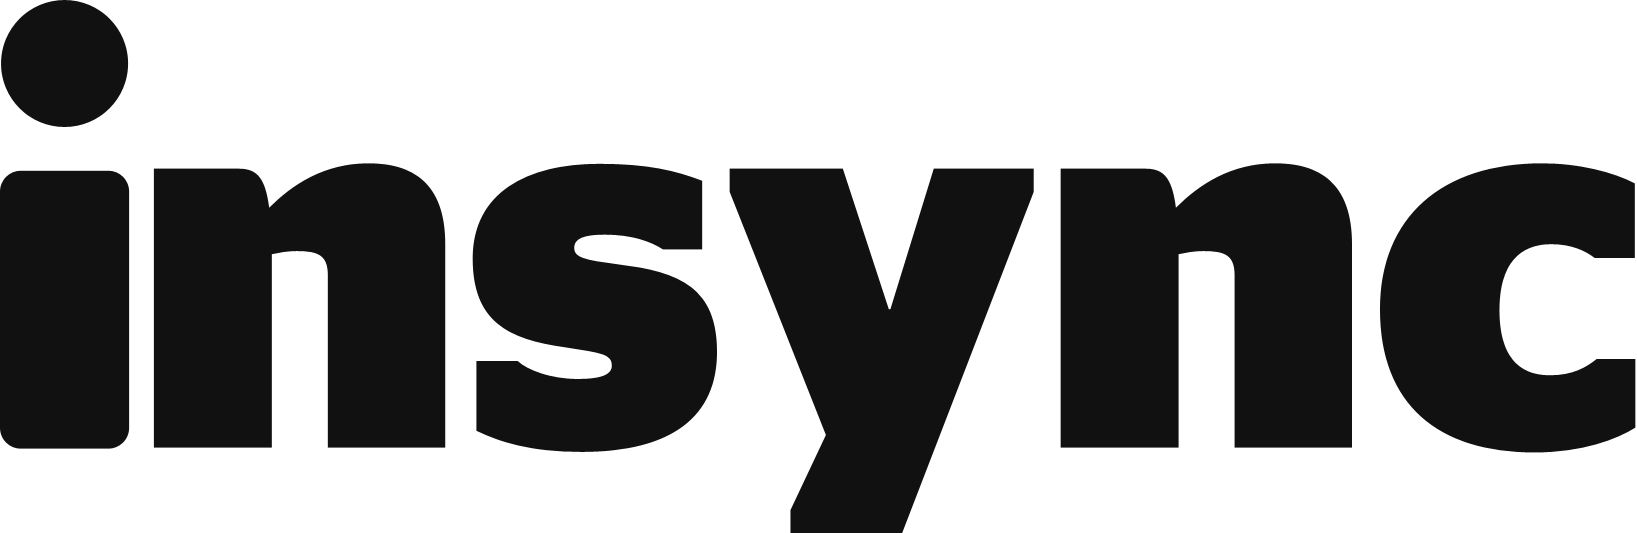 Download Insync for Windows, Linux, and mac OS